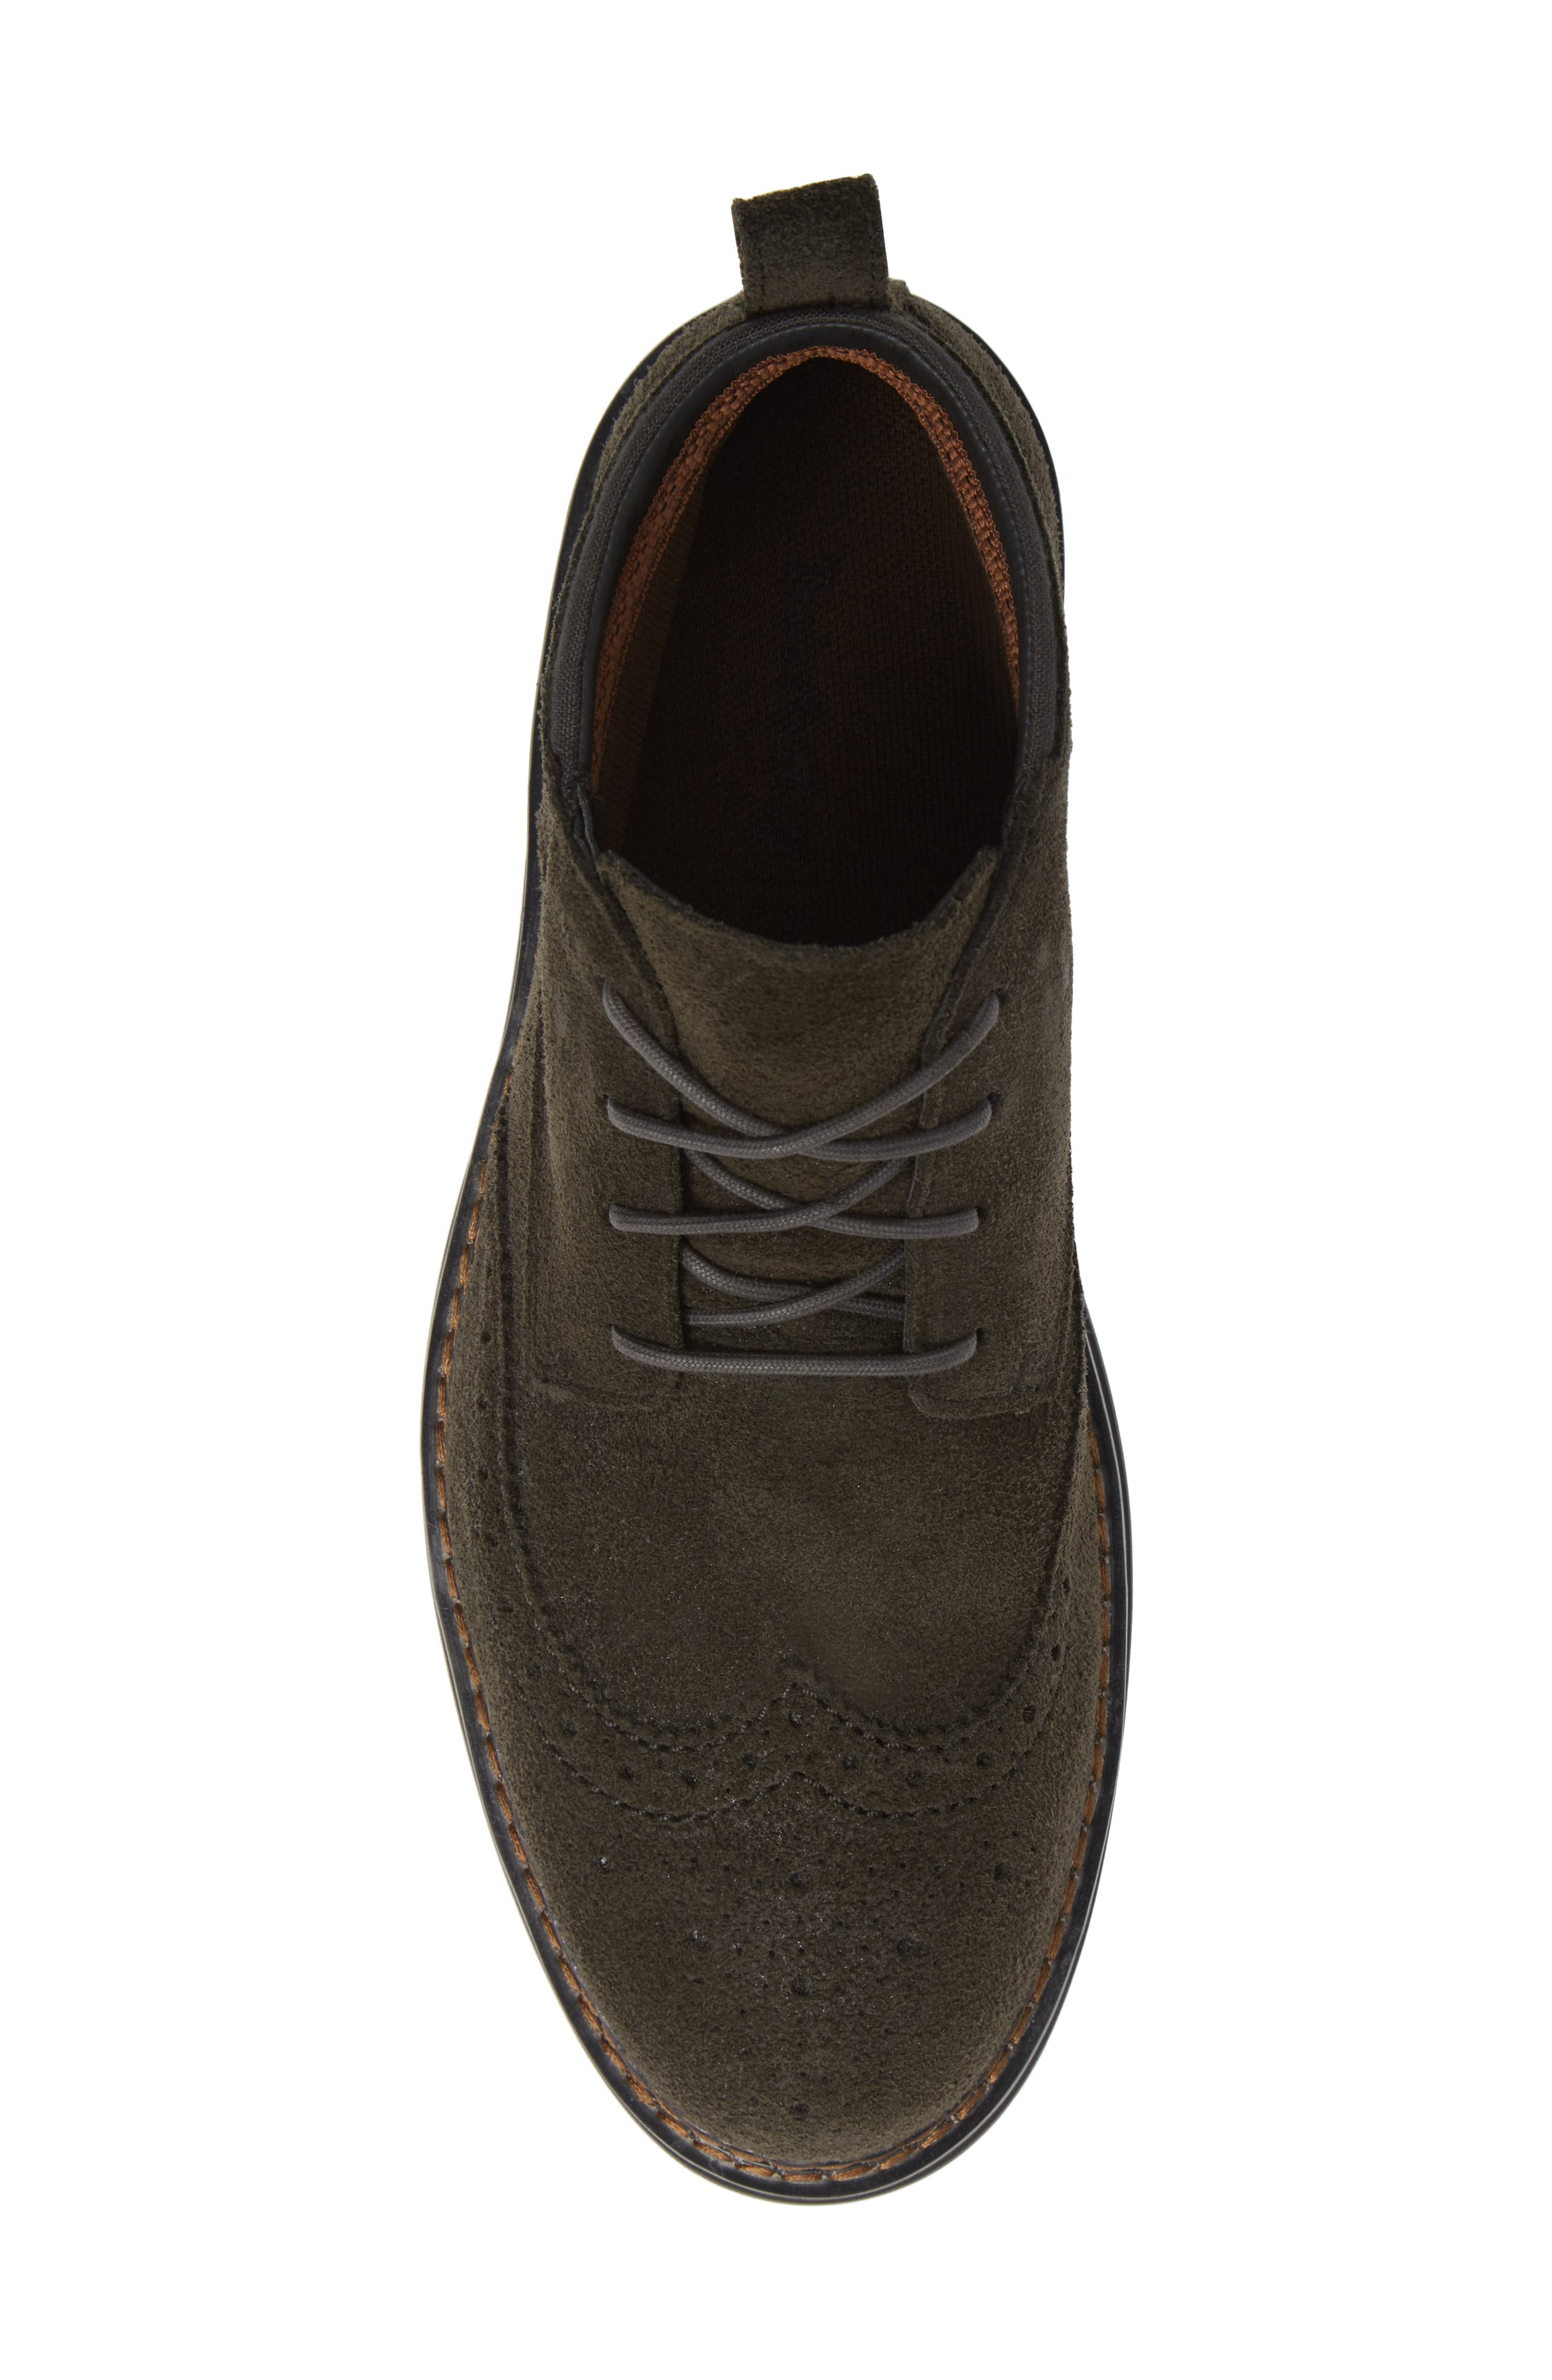 Squall Canyon Waterproof Wingtip Chukka Boot,                             Alternate thumbnail 5, color,                             VINTAGE GREEN SUEDE